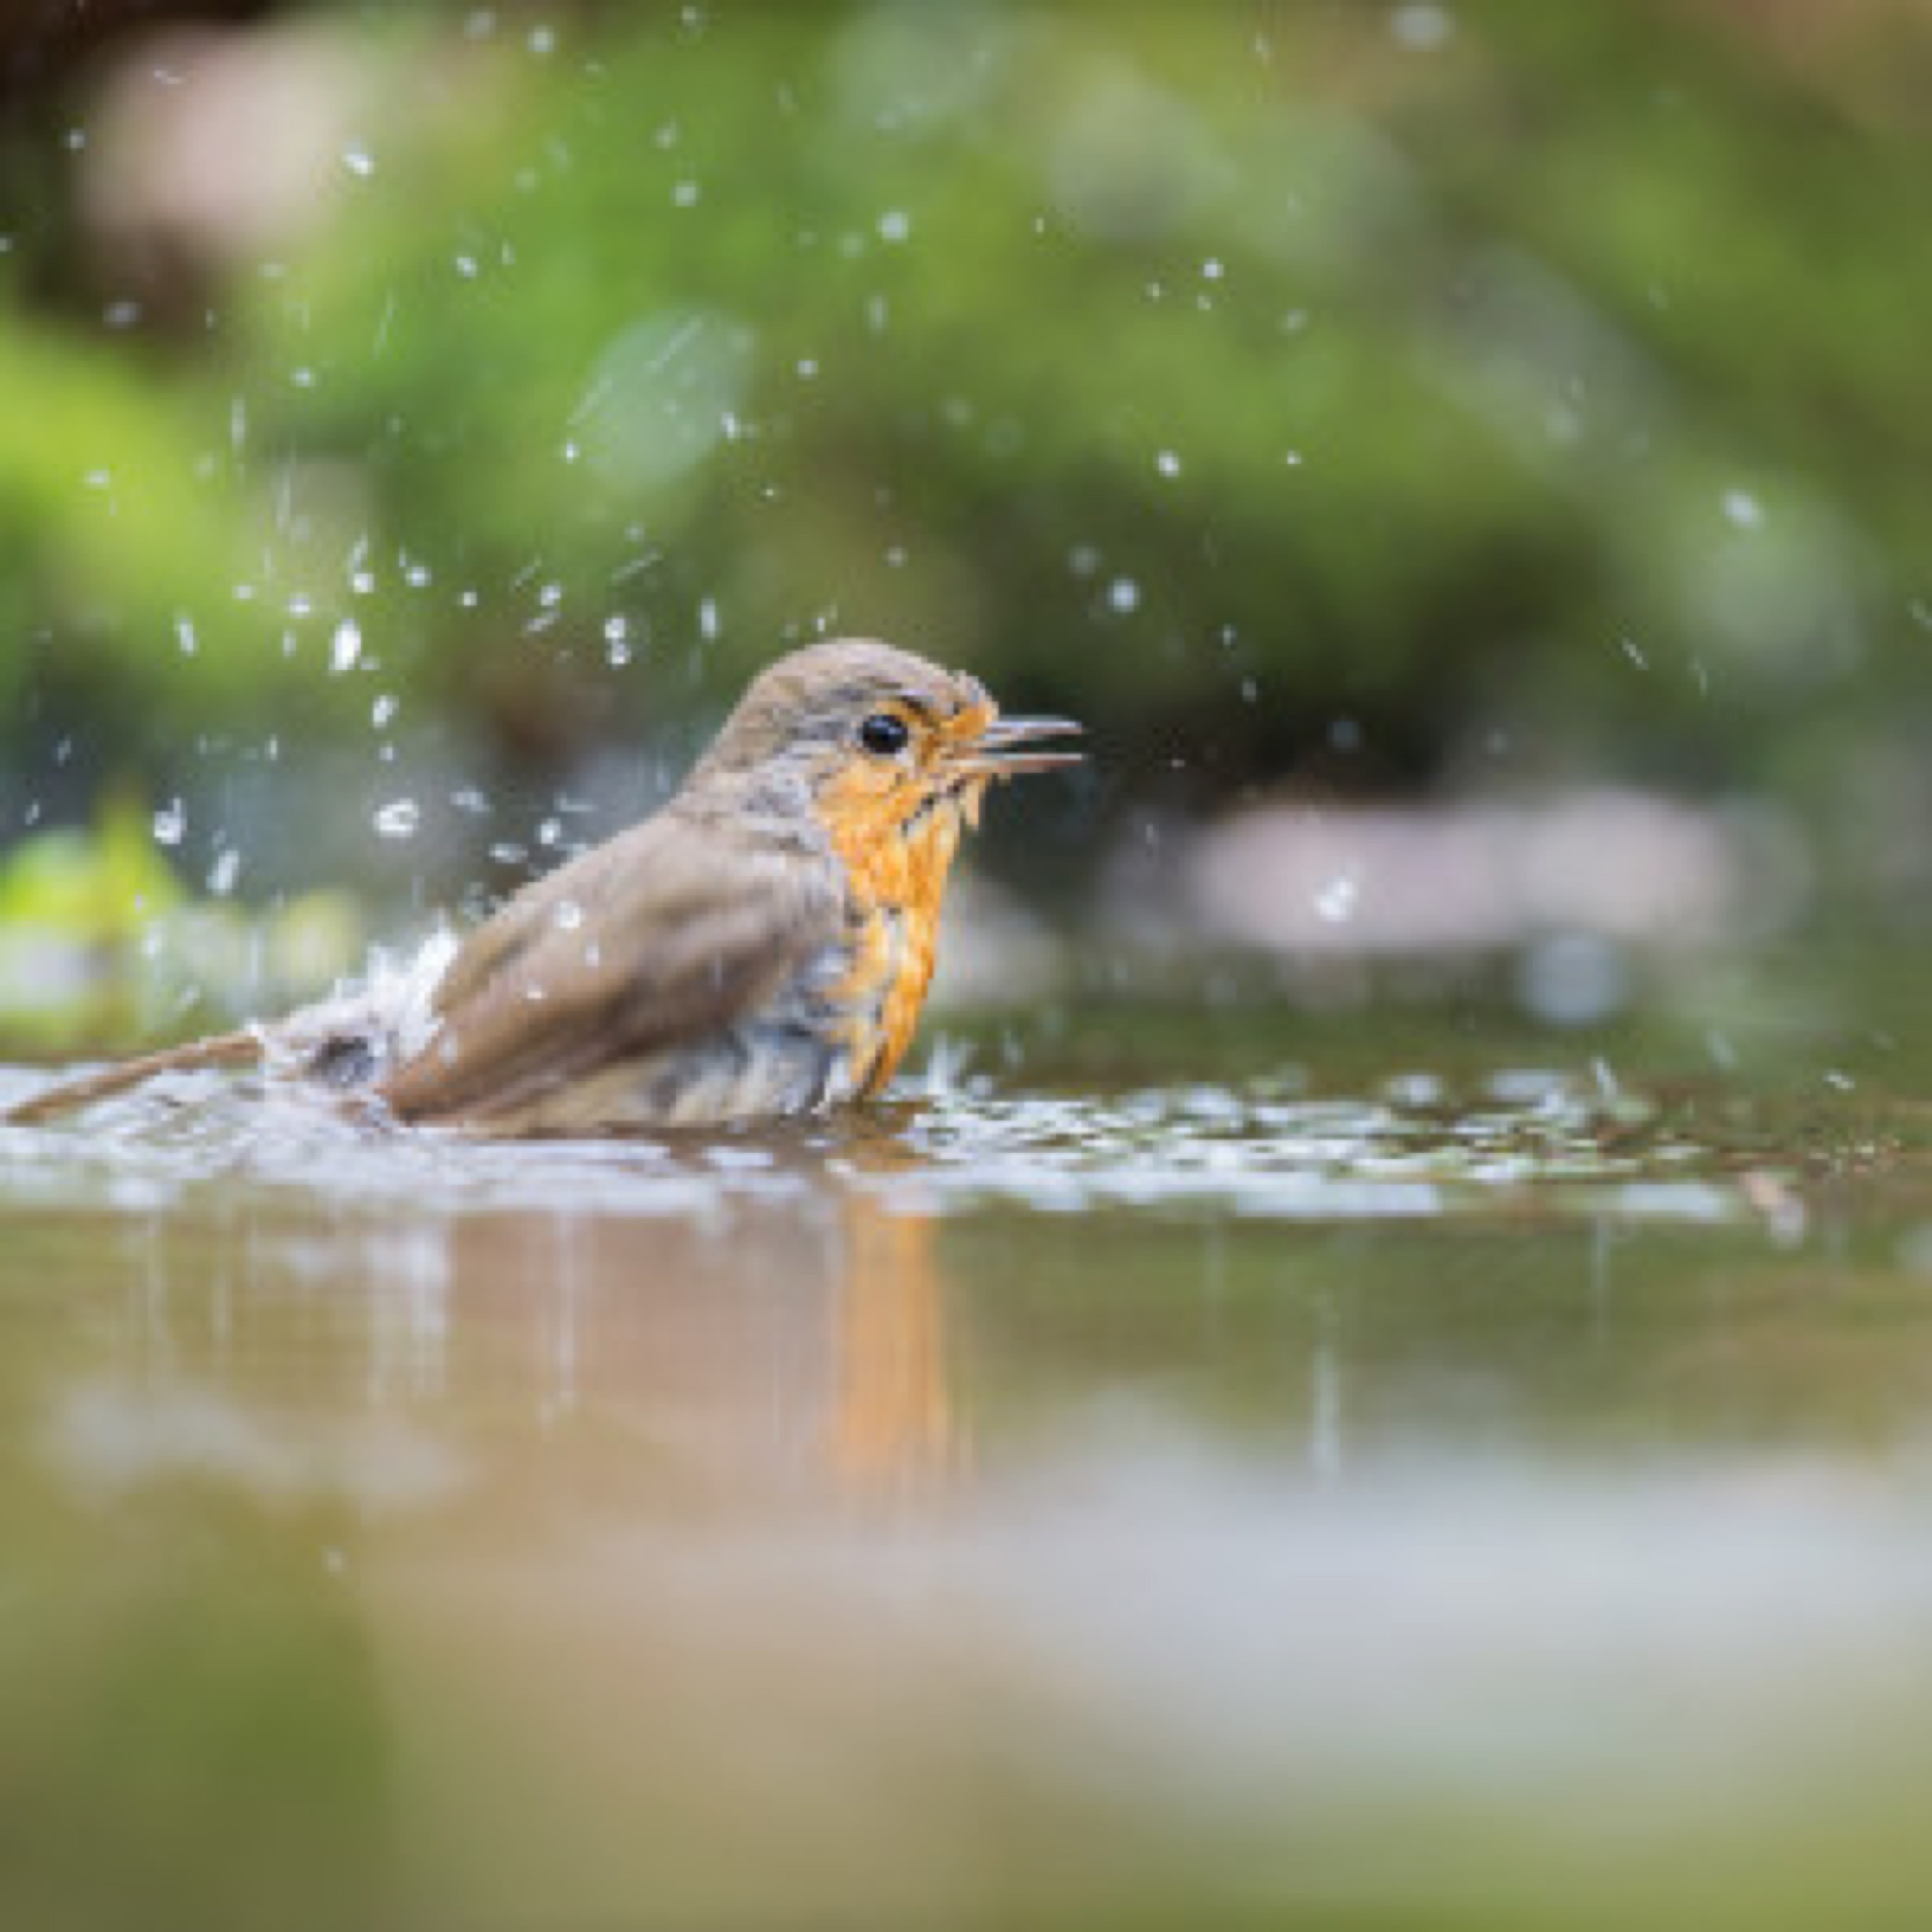 European Robin bird taking a bath